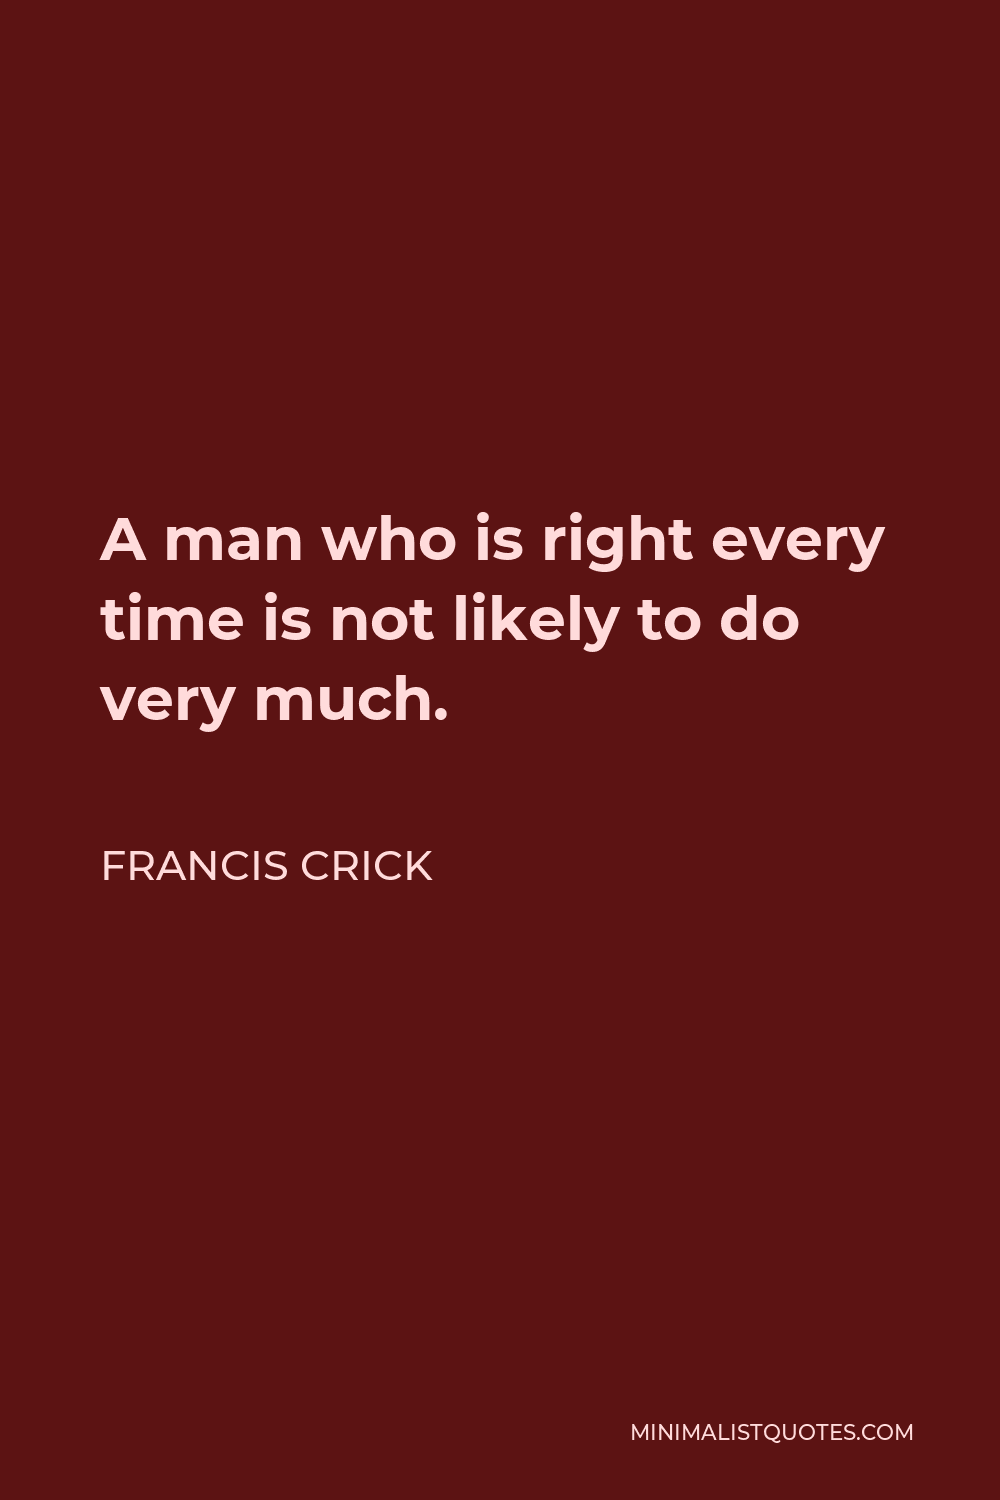 Francis Crick Quote - A man who is right every time is not likely to do very much.